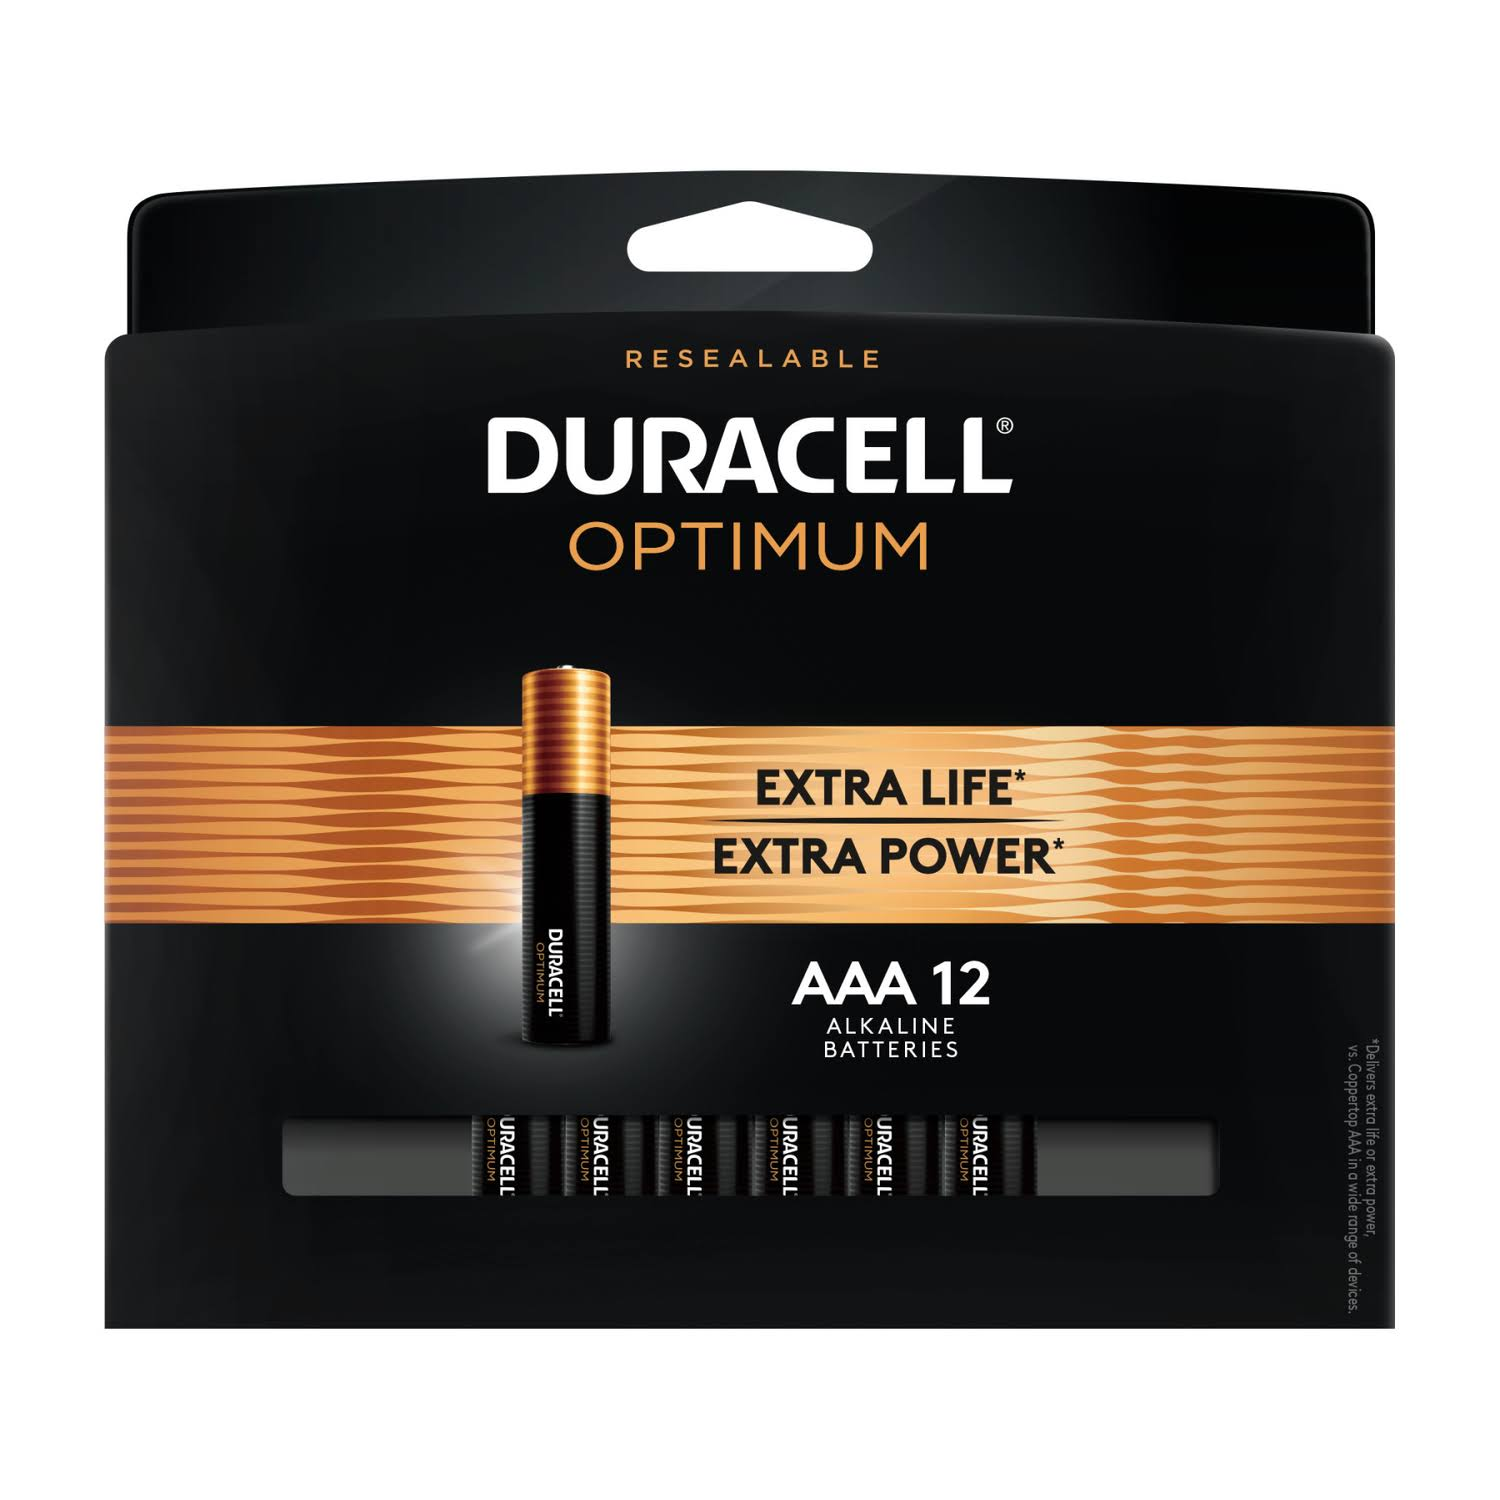 Duracell Optimum AAA Alkaline Battery - 12 Pack